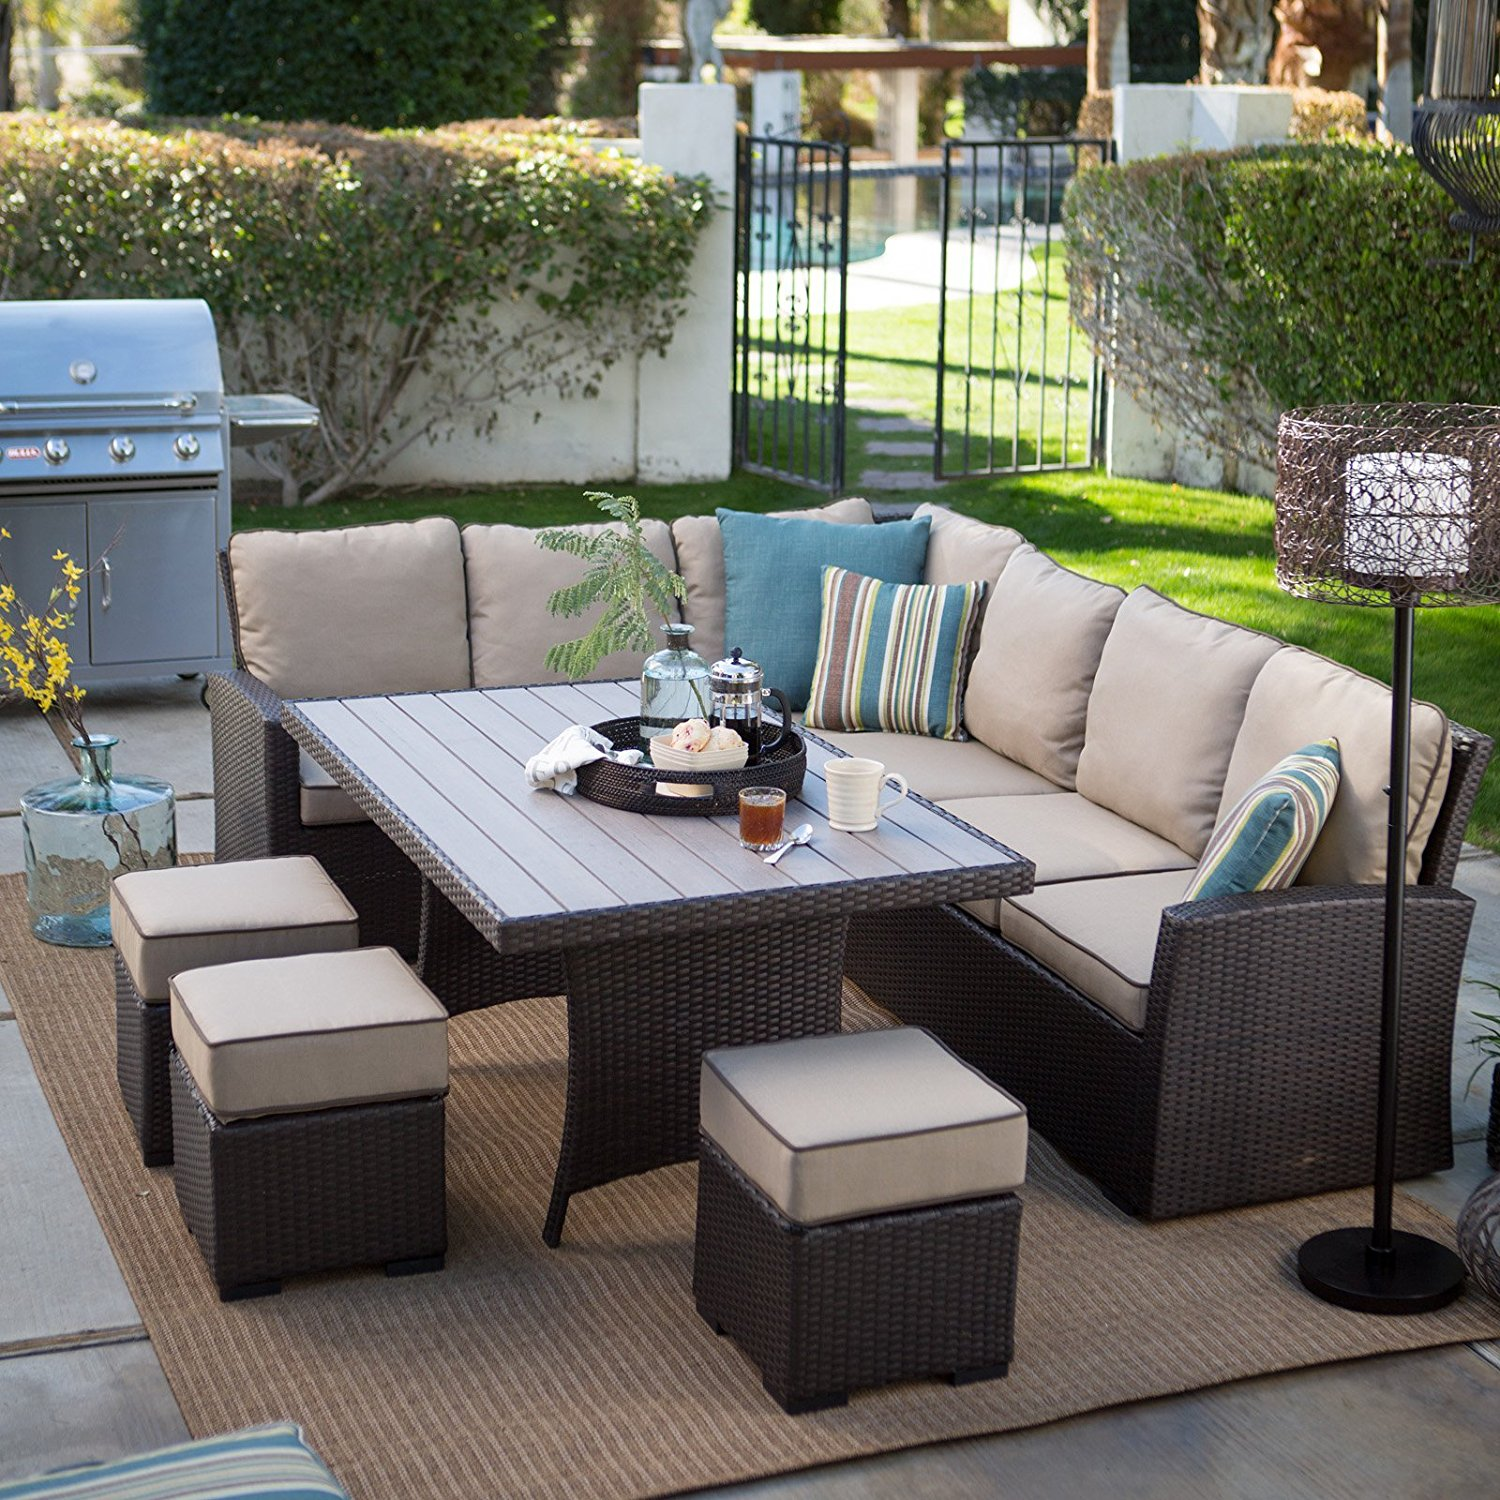 Patio Dining Sets Amazon.com : Dark Brown Modern All Weather Wicker  Aluminum Sofa Sectional